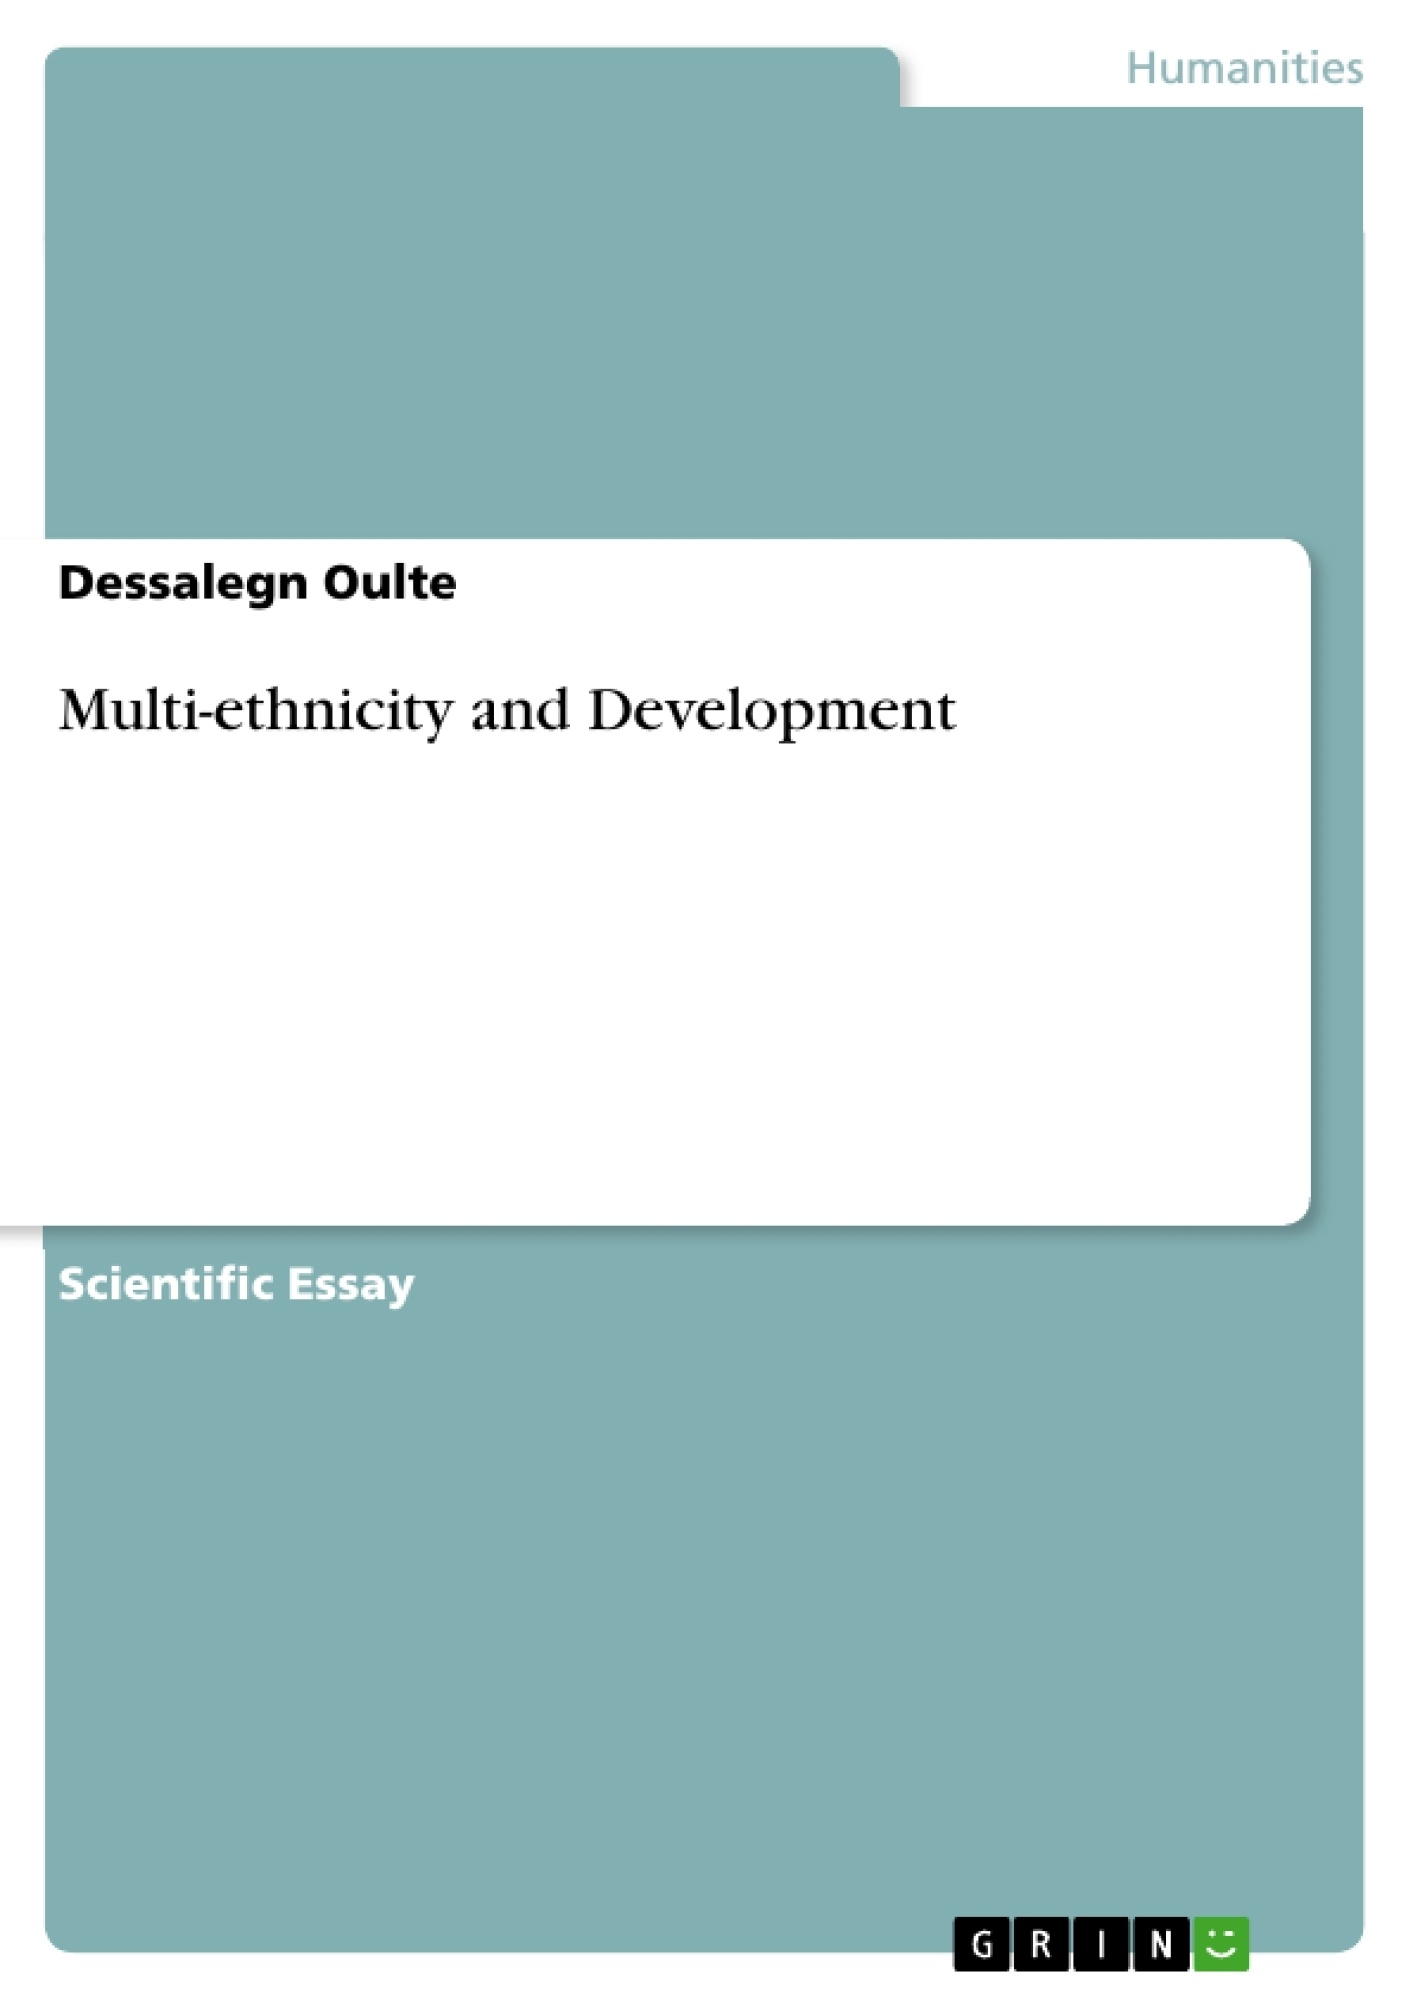 multi ethnicity and development publish your master s thesis multi ethnicity and development publish your master s thesis bachelor s thesis essay or term paper